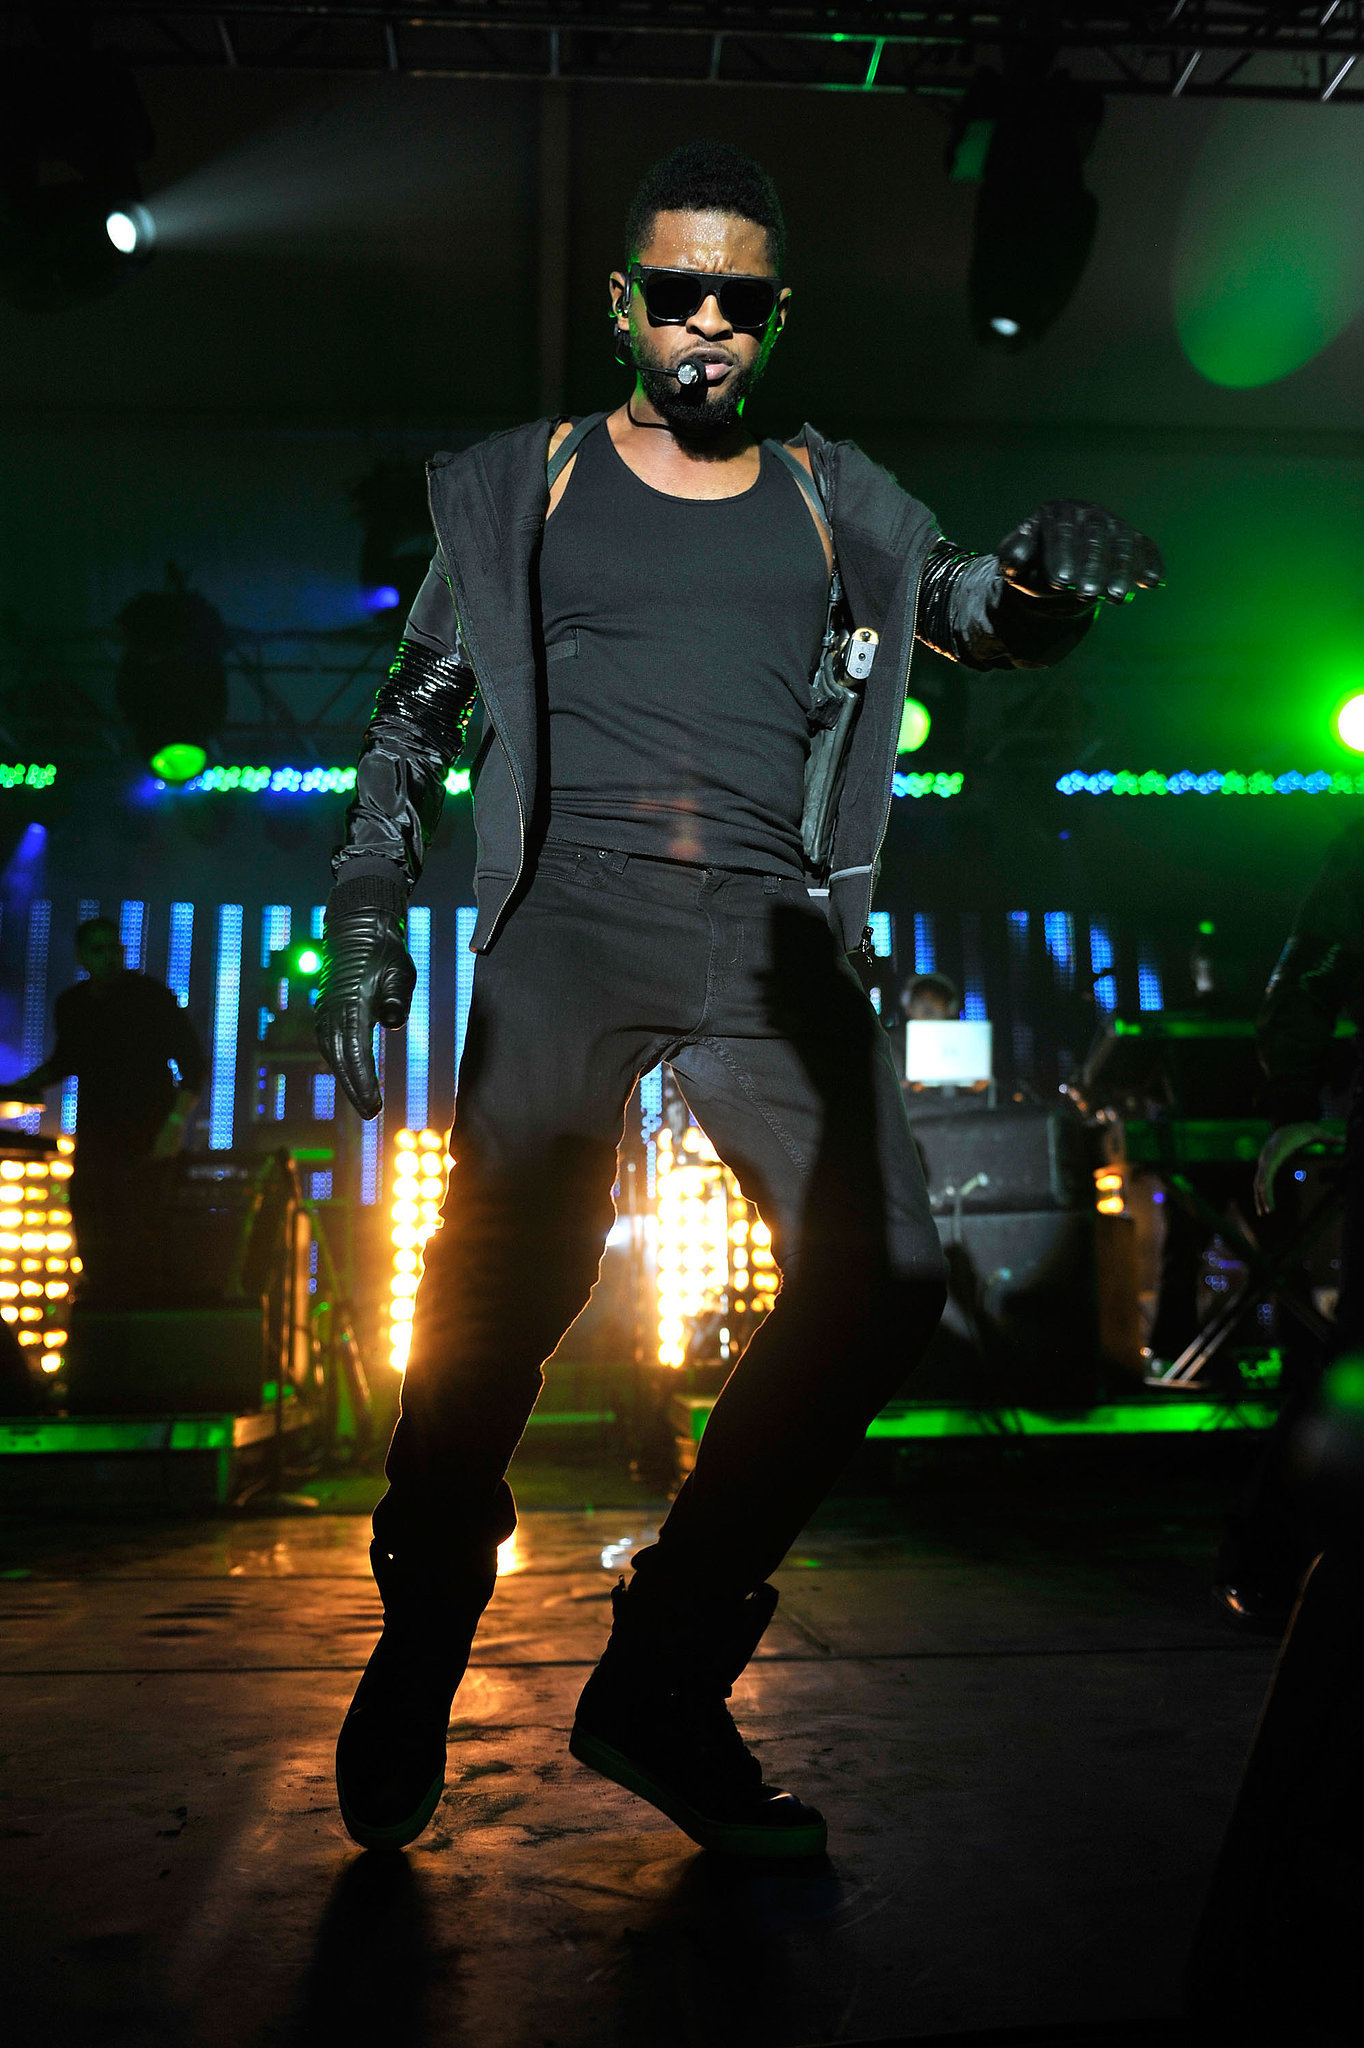 Usher showed off his signature sexy dance moves during a party performance in 2011.